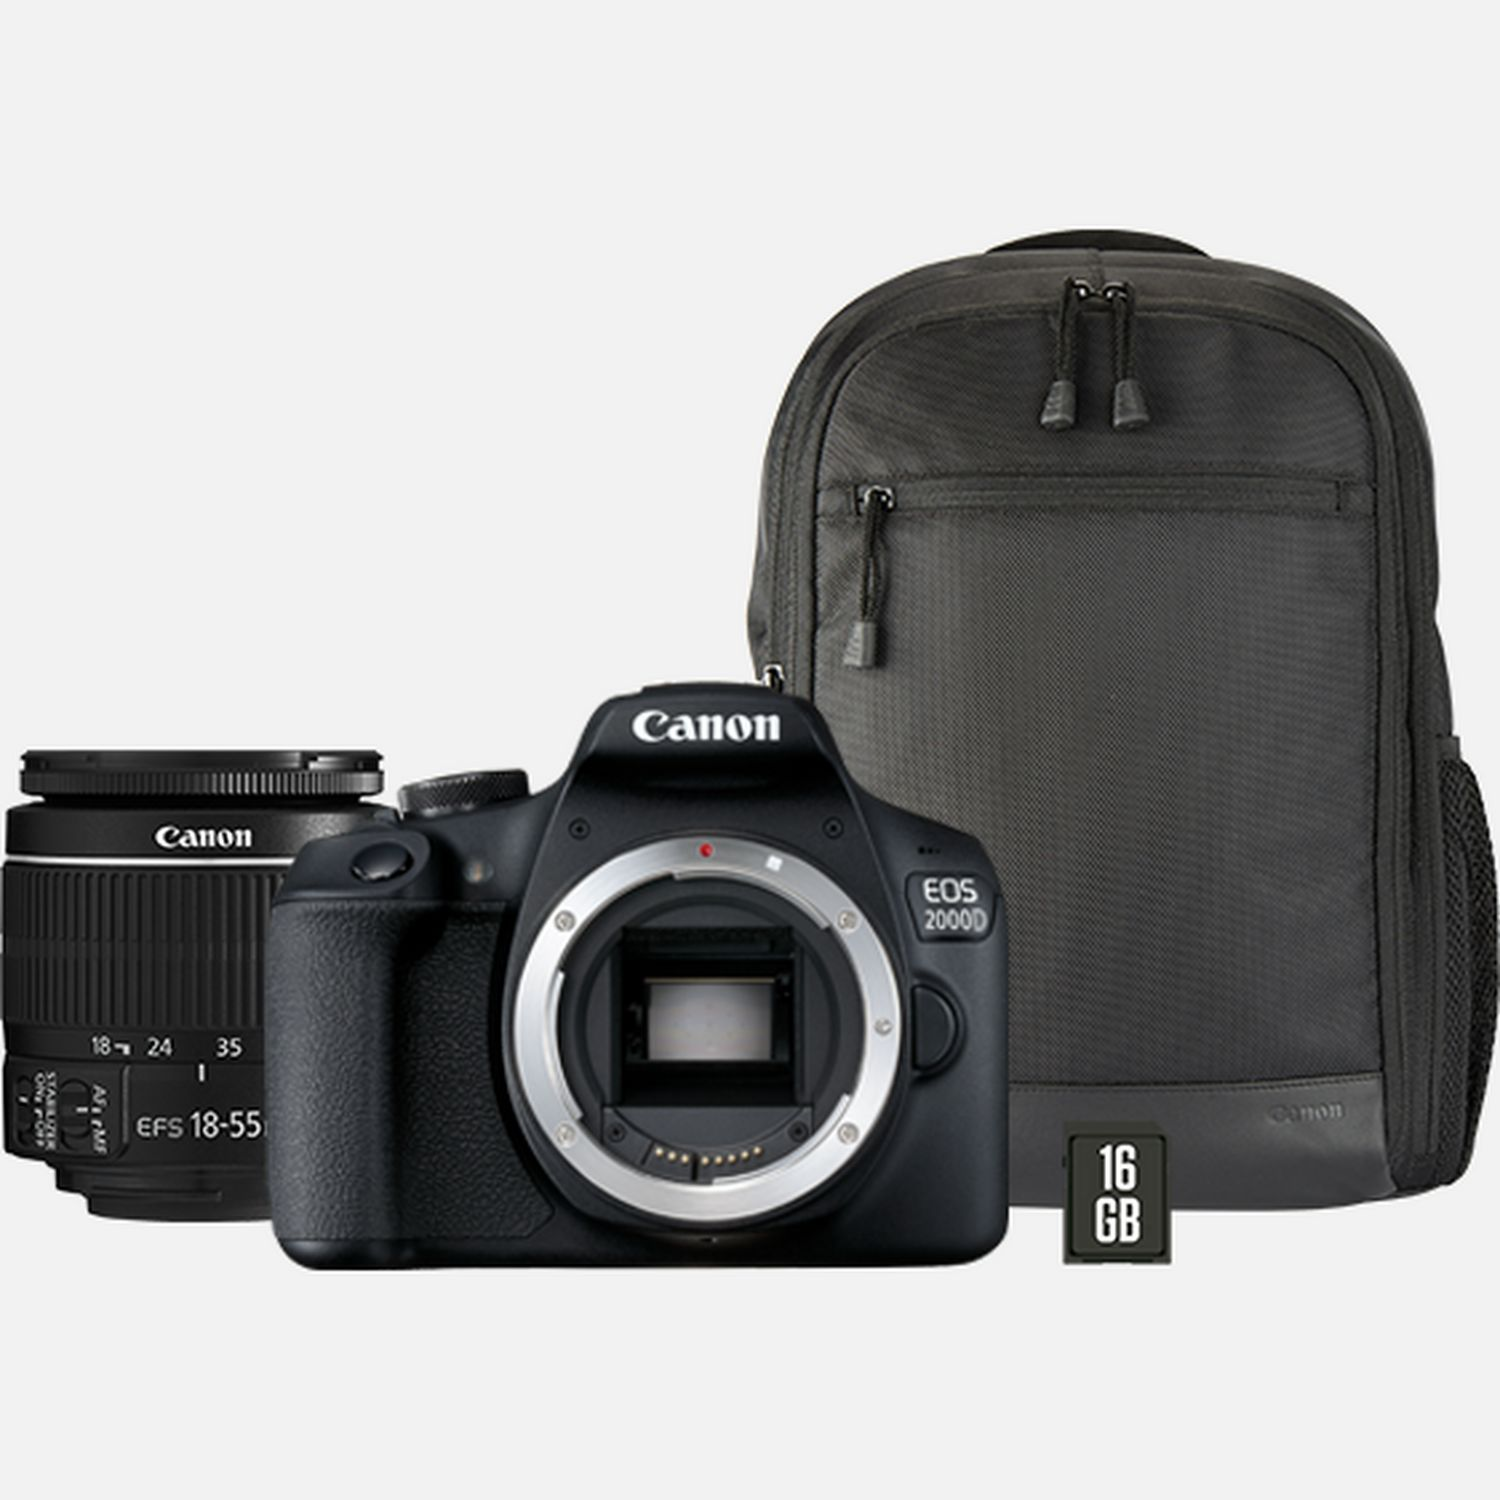 Image of Canon EOS 2000D + EF-S 18-55mm IS II Lens + Backpack + SD card